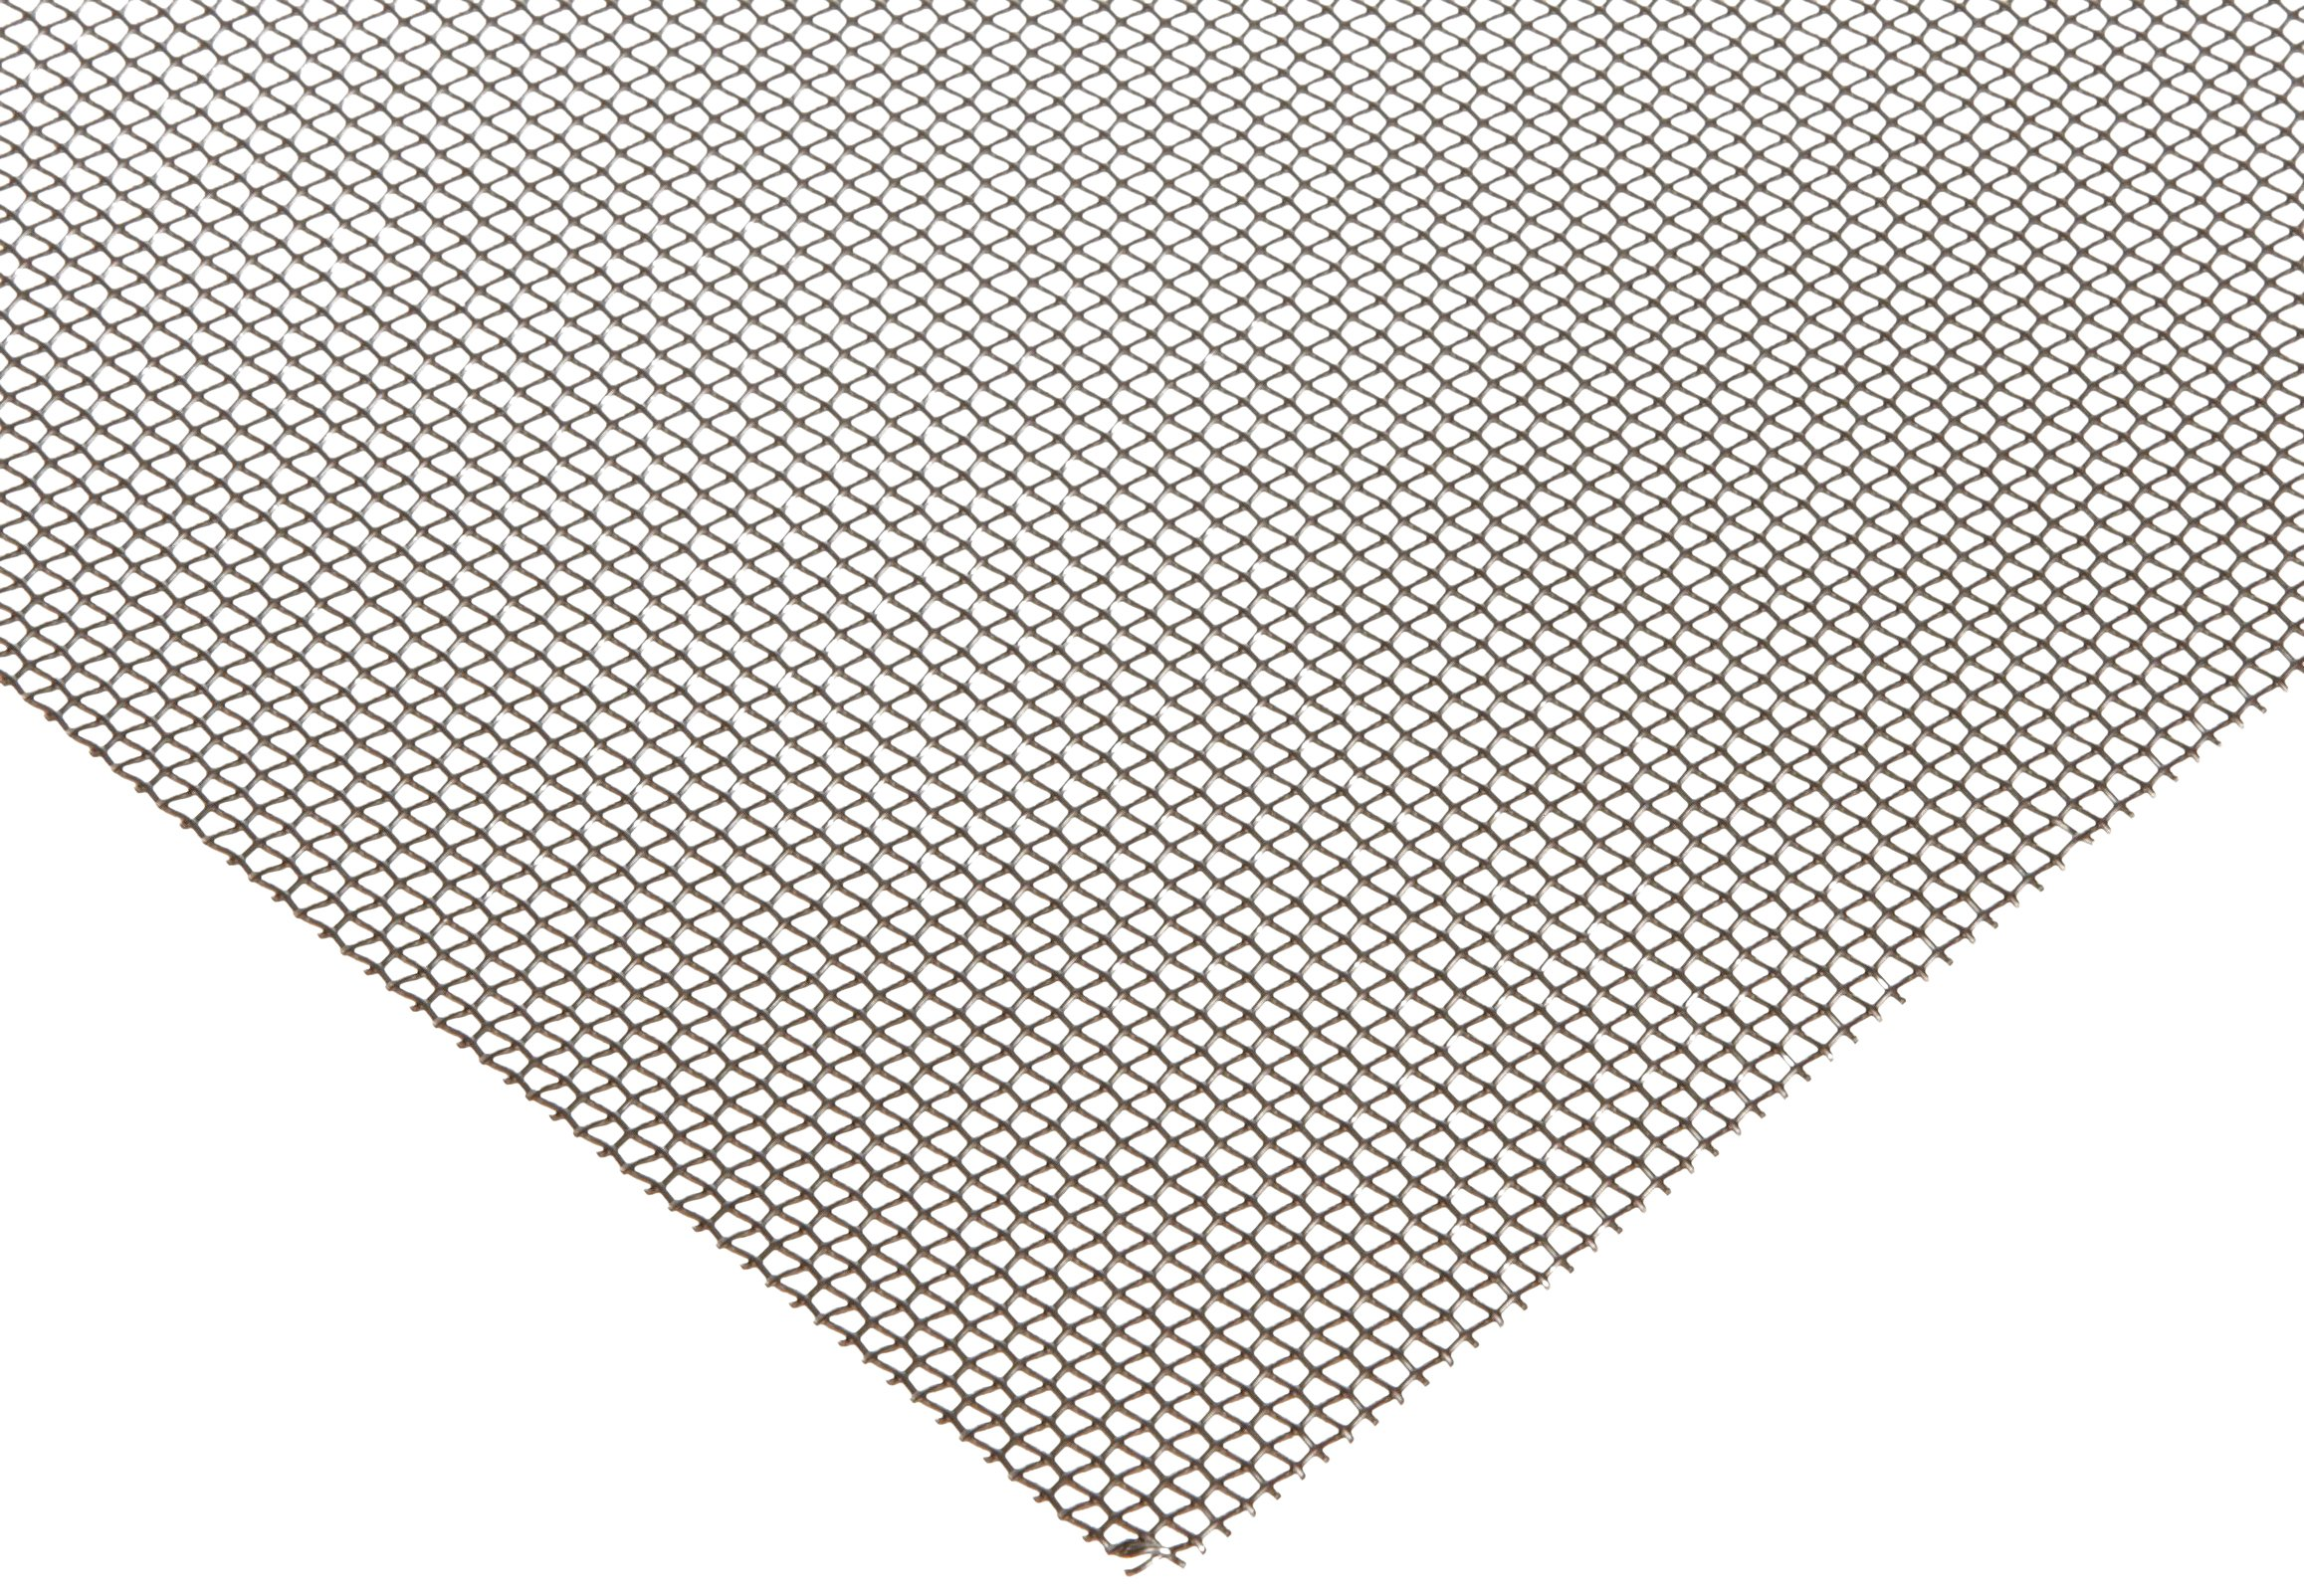 400 Nickel Woven Mesh Sheet, Unpolished